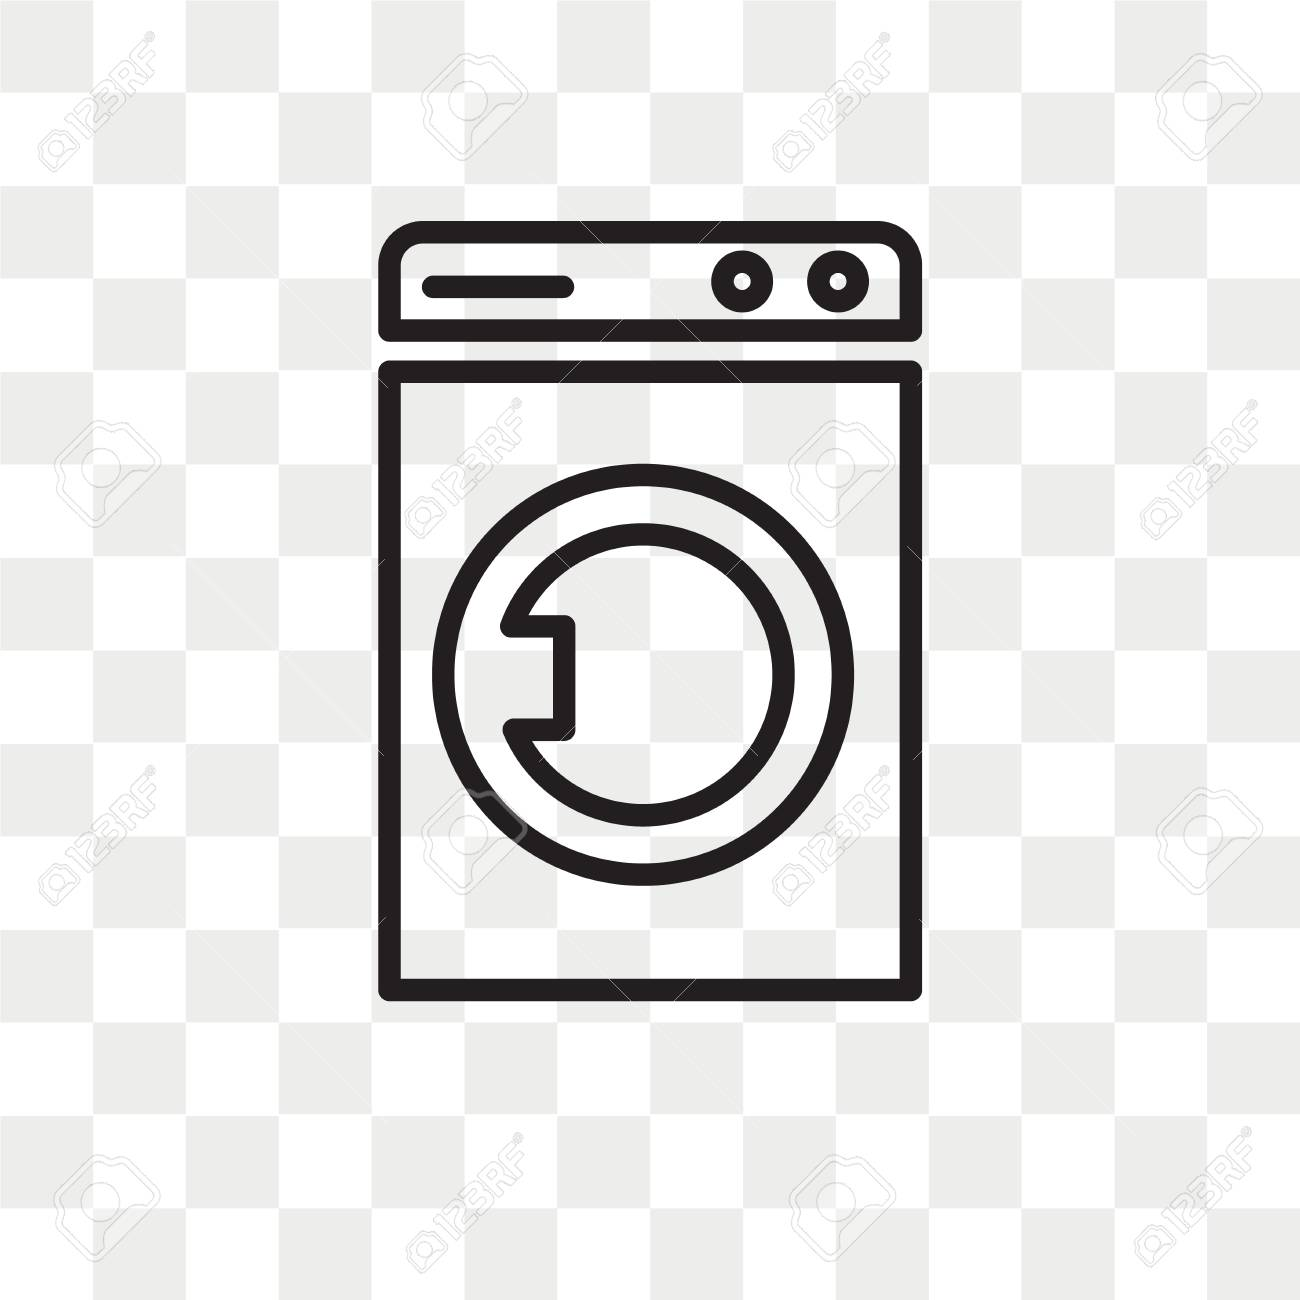 laundry vector icon isolated on transparent background laundry royalty free cliparts vectors and stock illustration image 108560820 laundry vector icon isolated on transparent background laundry